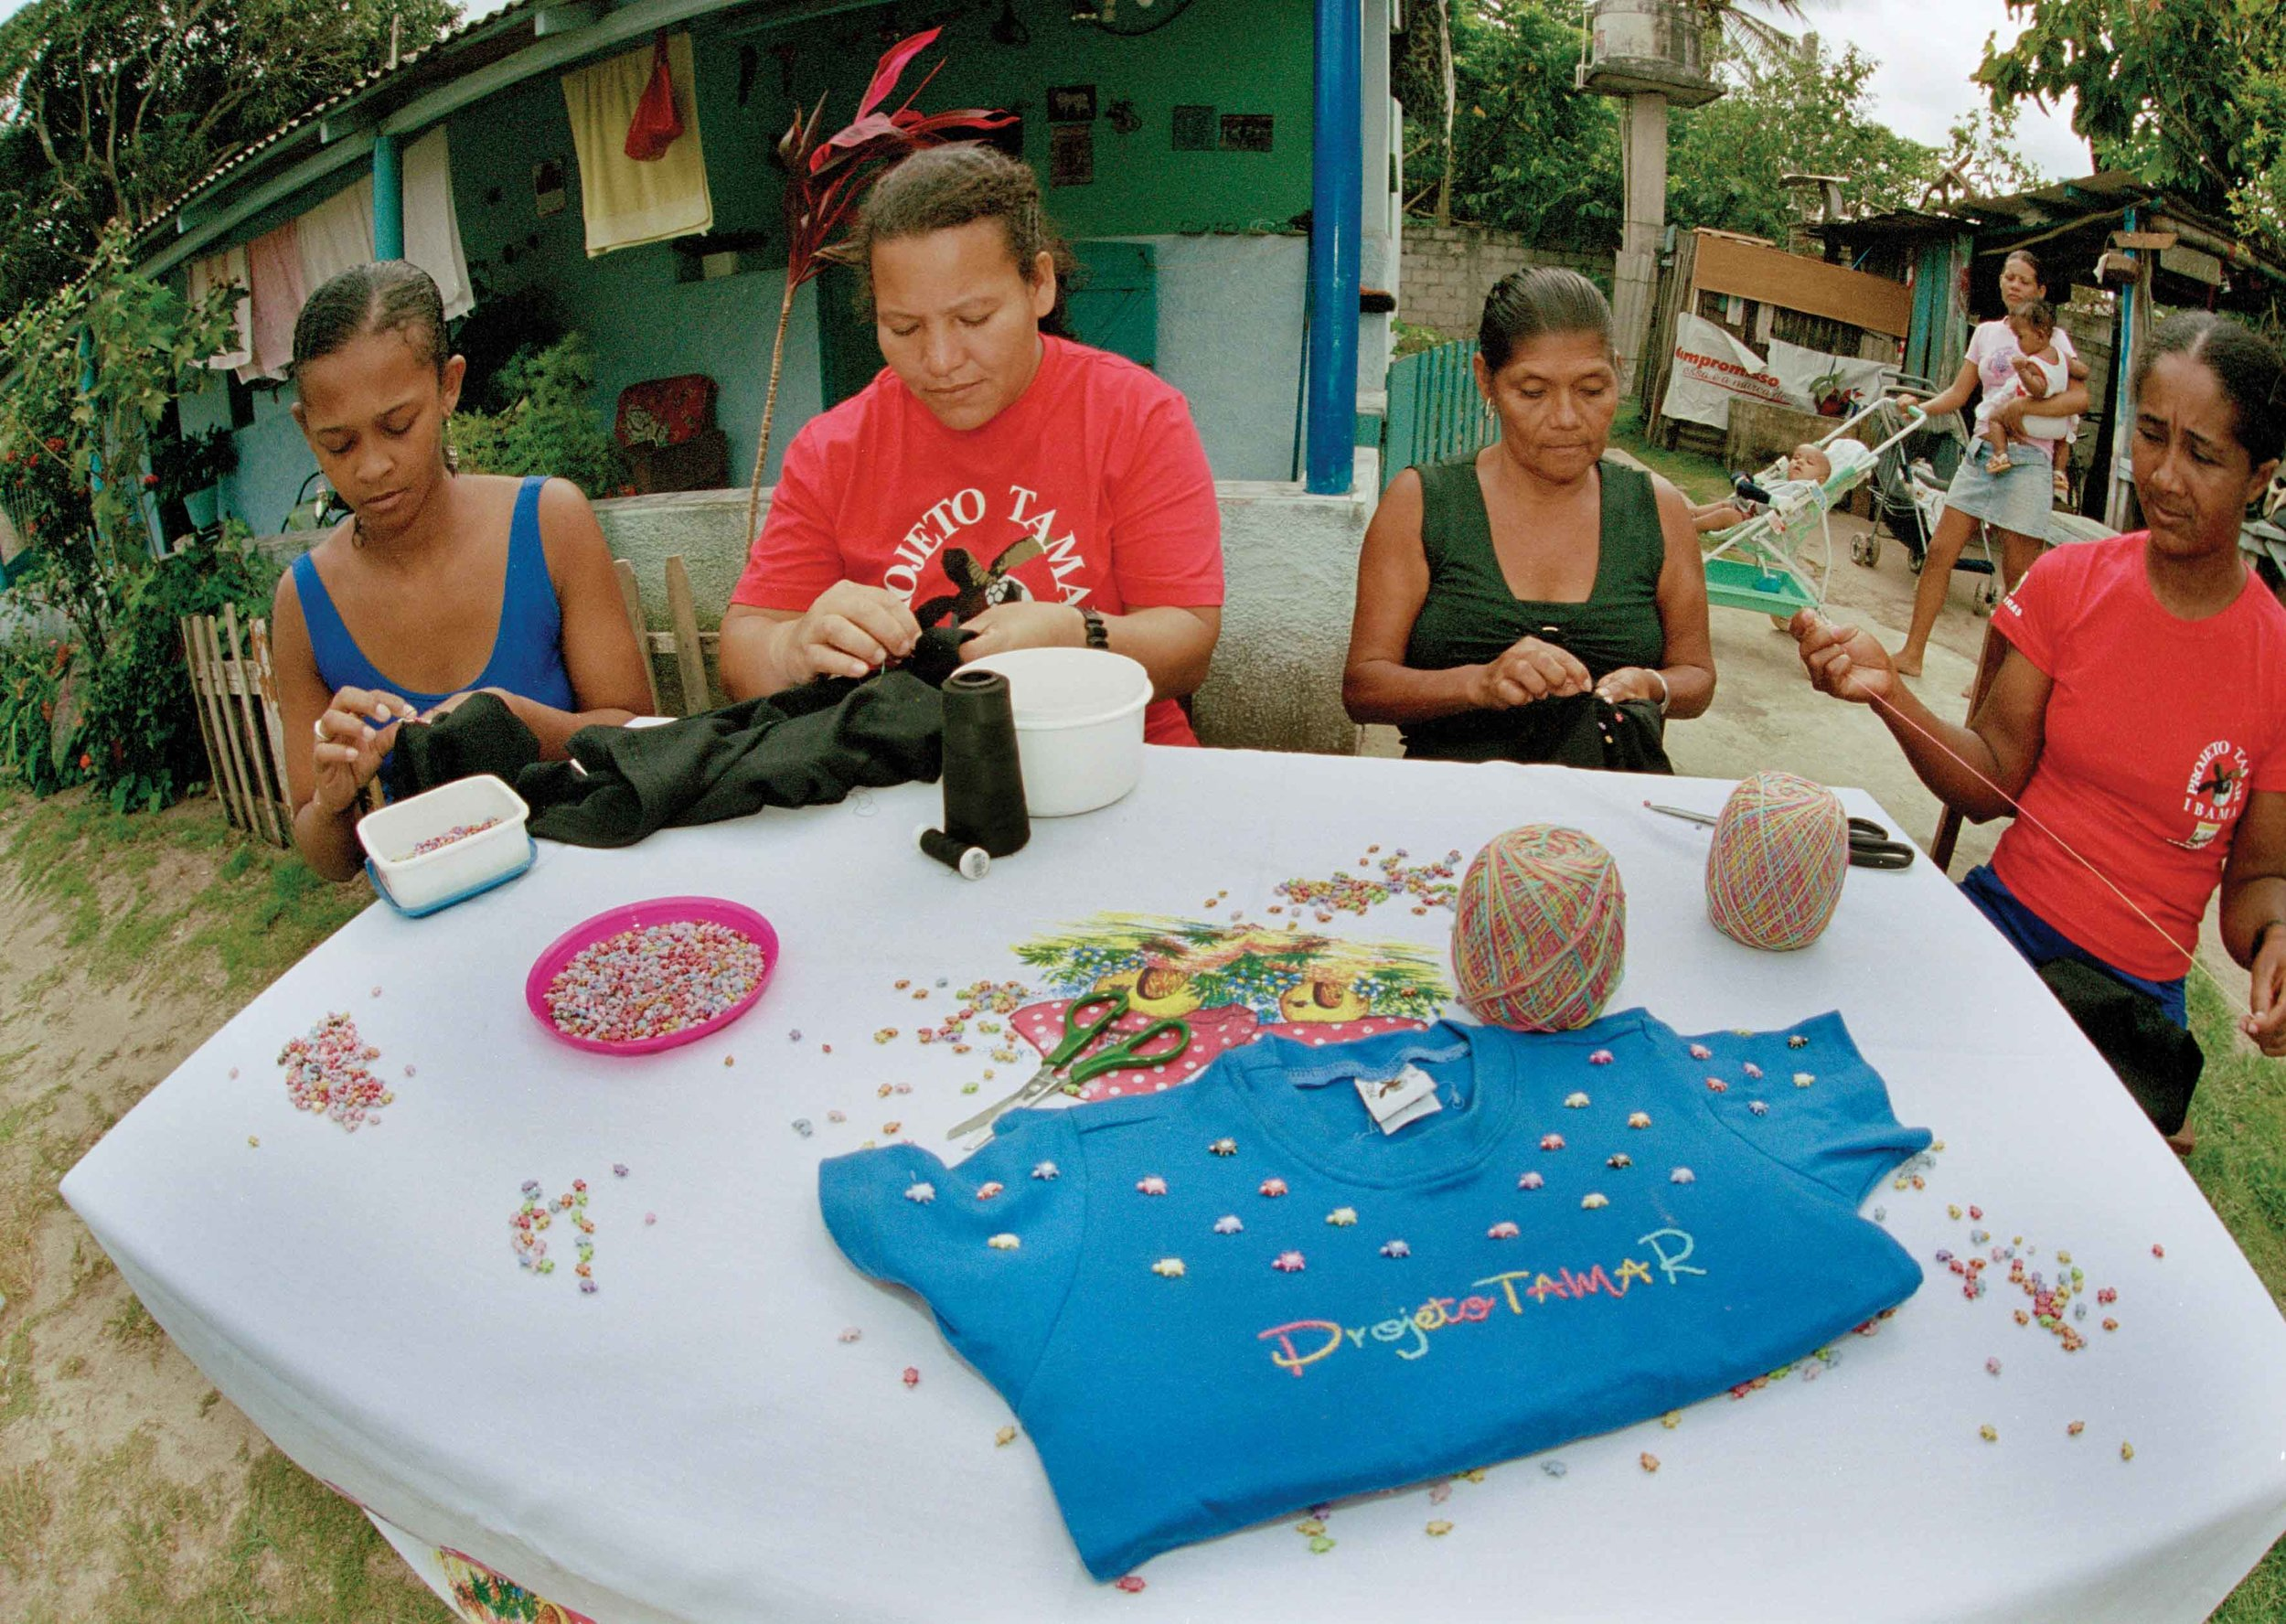 A local community craft group creates handmade t-shirts that will be sold in stores run by Projeto TAMAR. TAMAR's innovative retail program supports community employment and funds conservation programs in coastal communities throughout northern Brazil. © Projeto TAMAR Image Bank